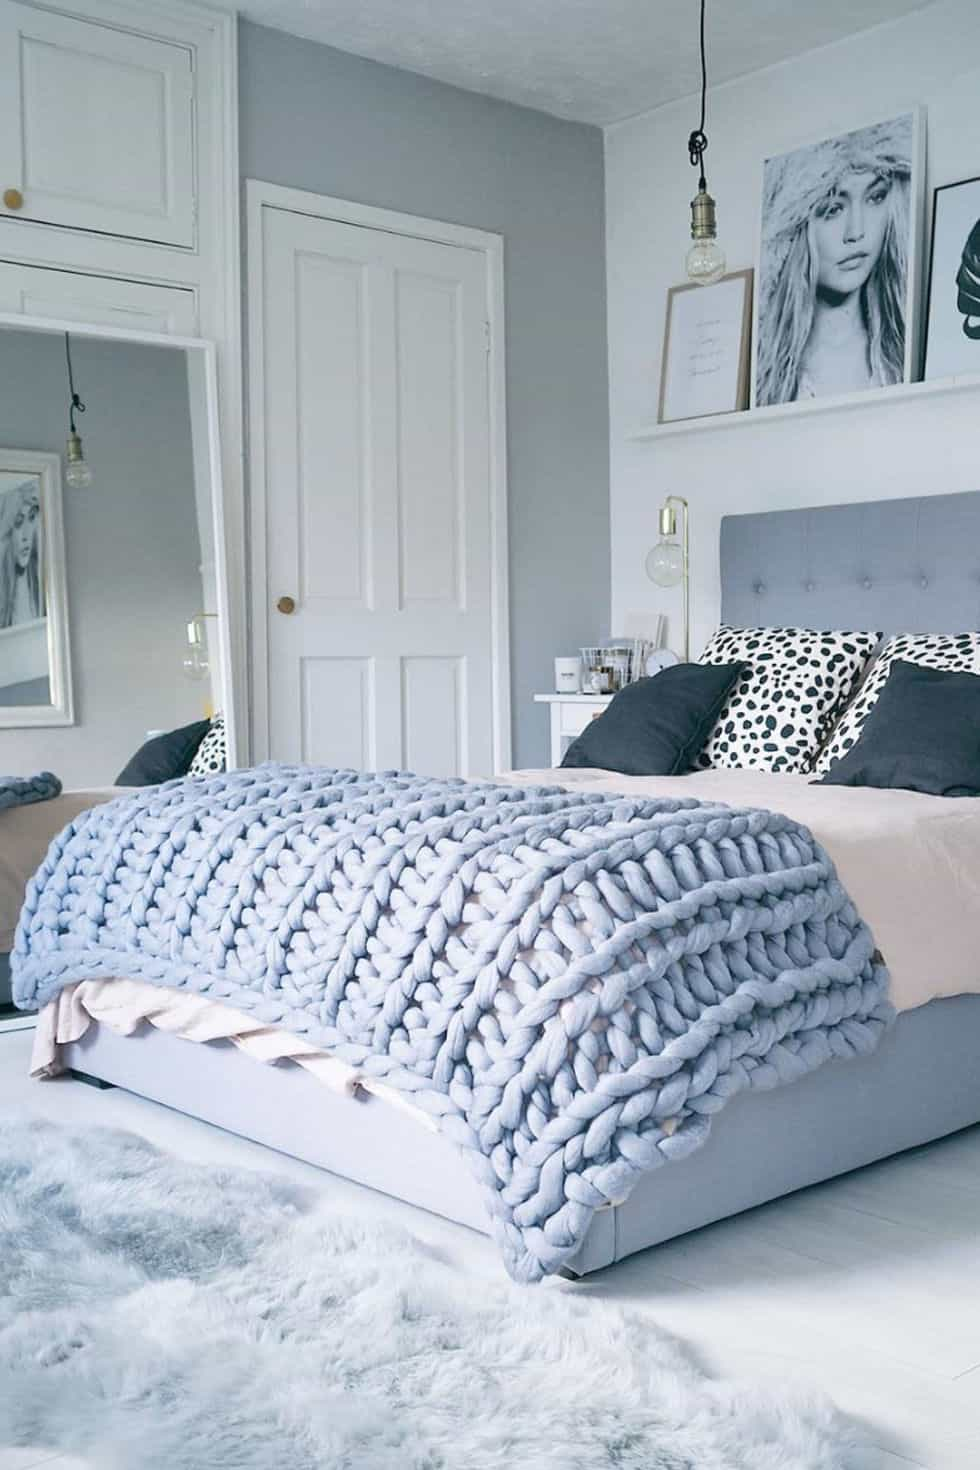 Diy extra large knit blanket